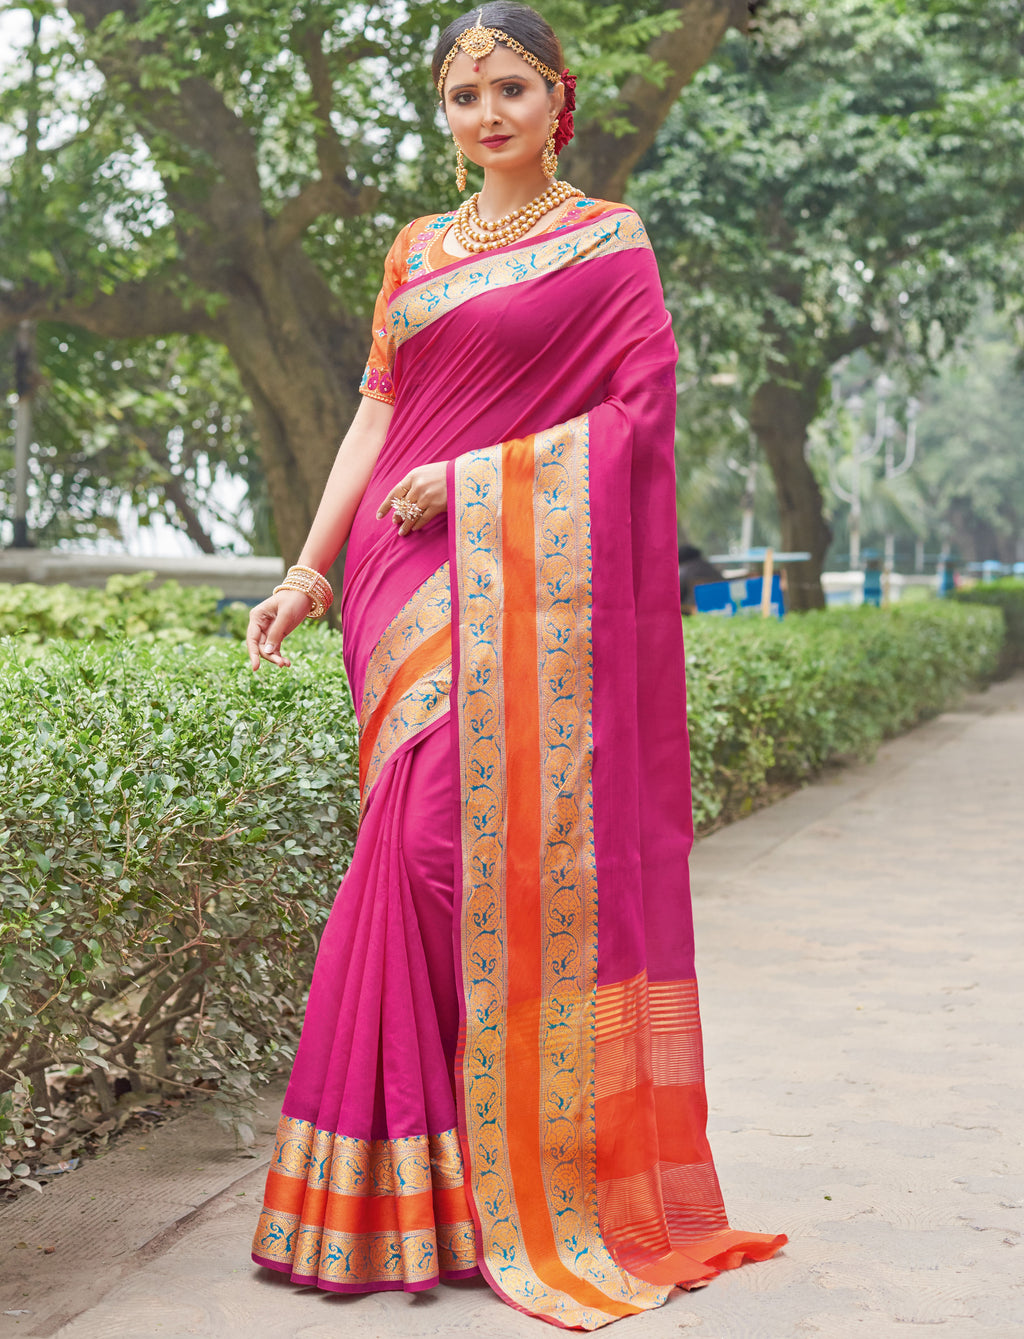 Rani Pink Color Handloom Silk Sarees With Beautiful Border For Religious Function NYF-7325